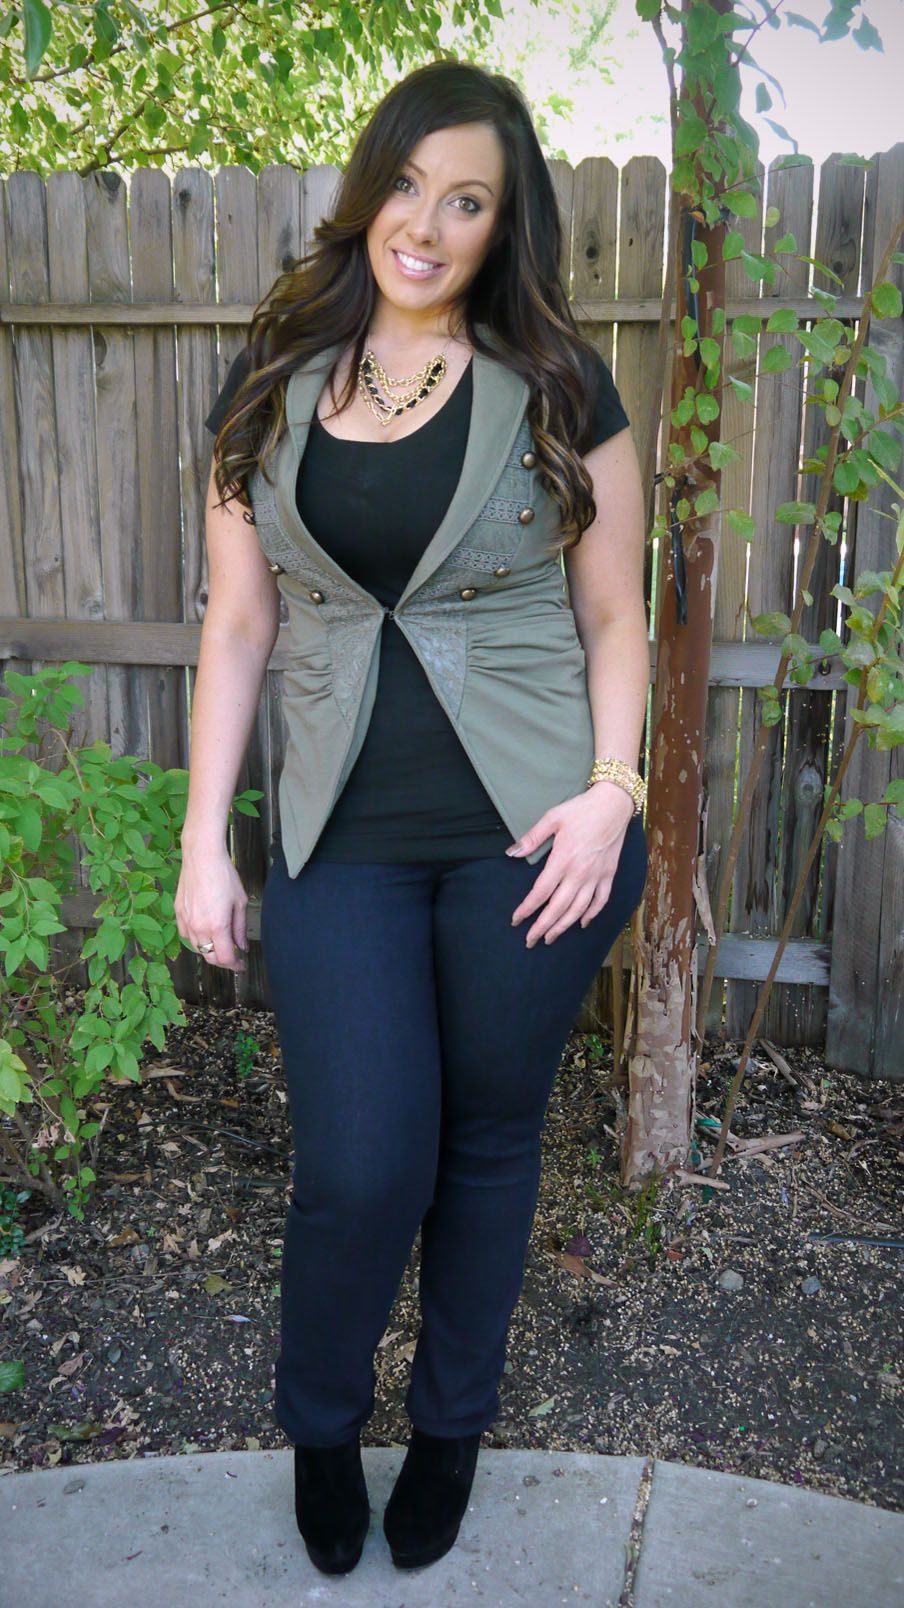 green vest and skinny jeans | fashion & style tips | pinterest